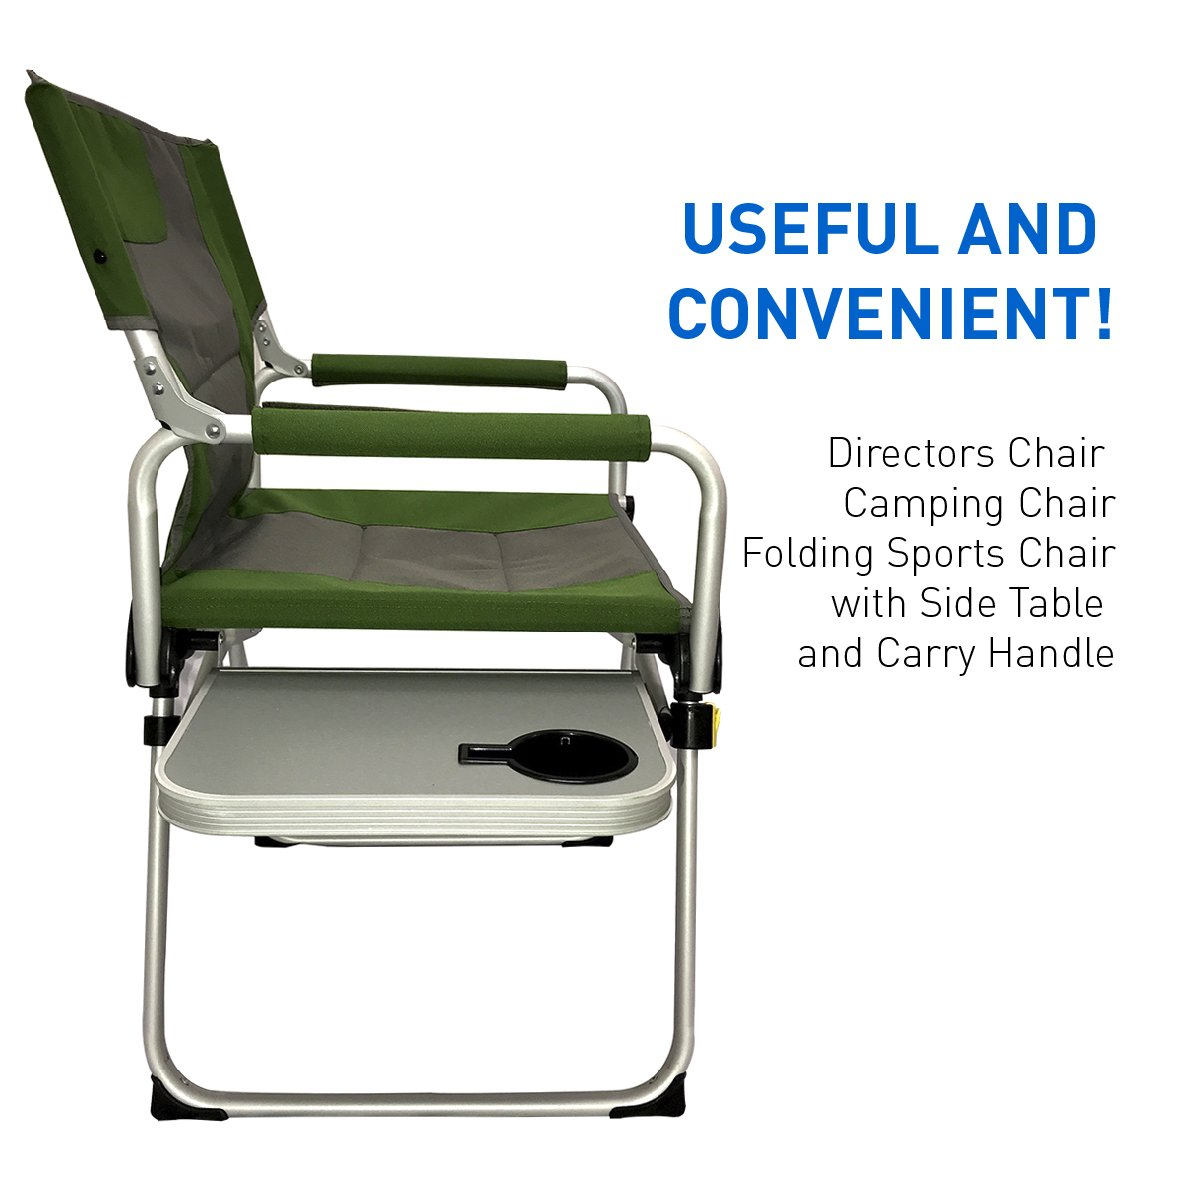 Amazon.com : Directors Chair   Camping Chair   Folding Sports Chair With  Side Table And Carry Handle   Green With Gray Trim : Sports U0026 Outdoors